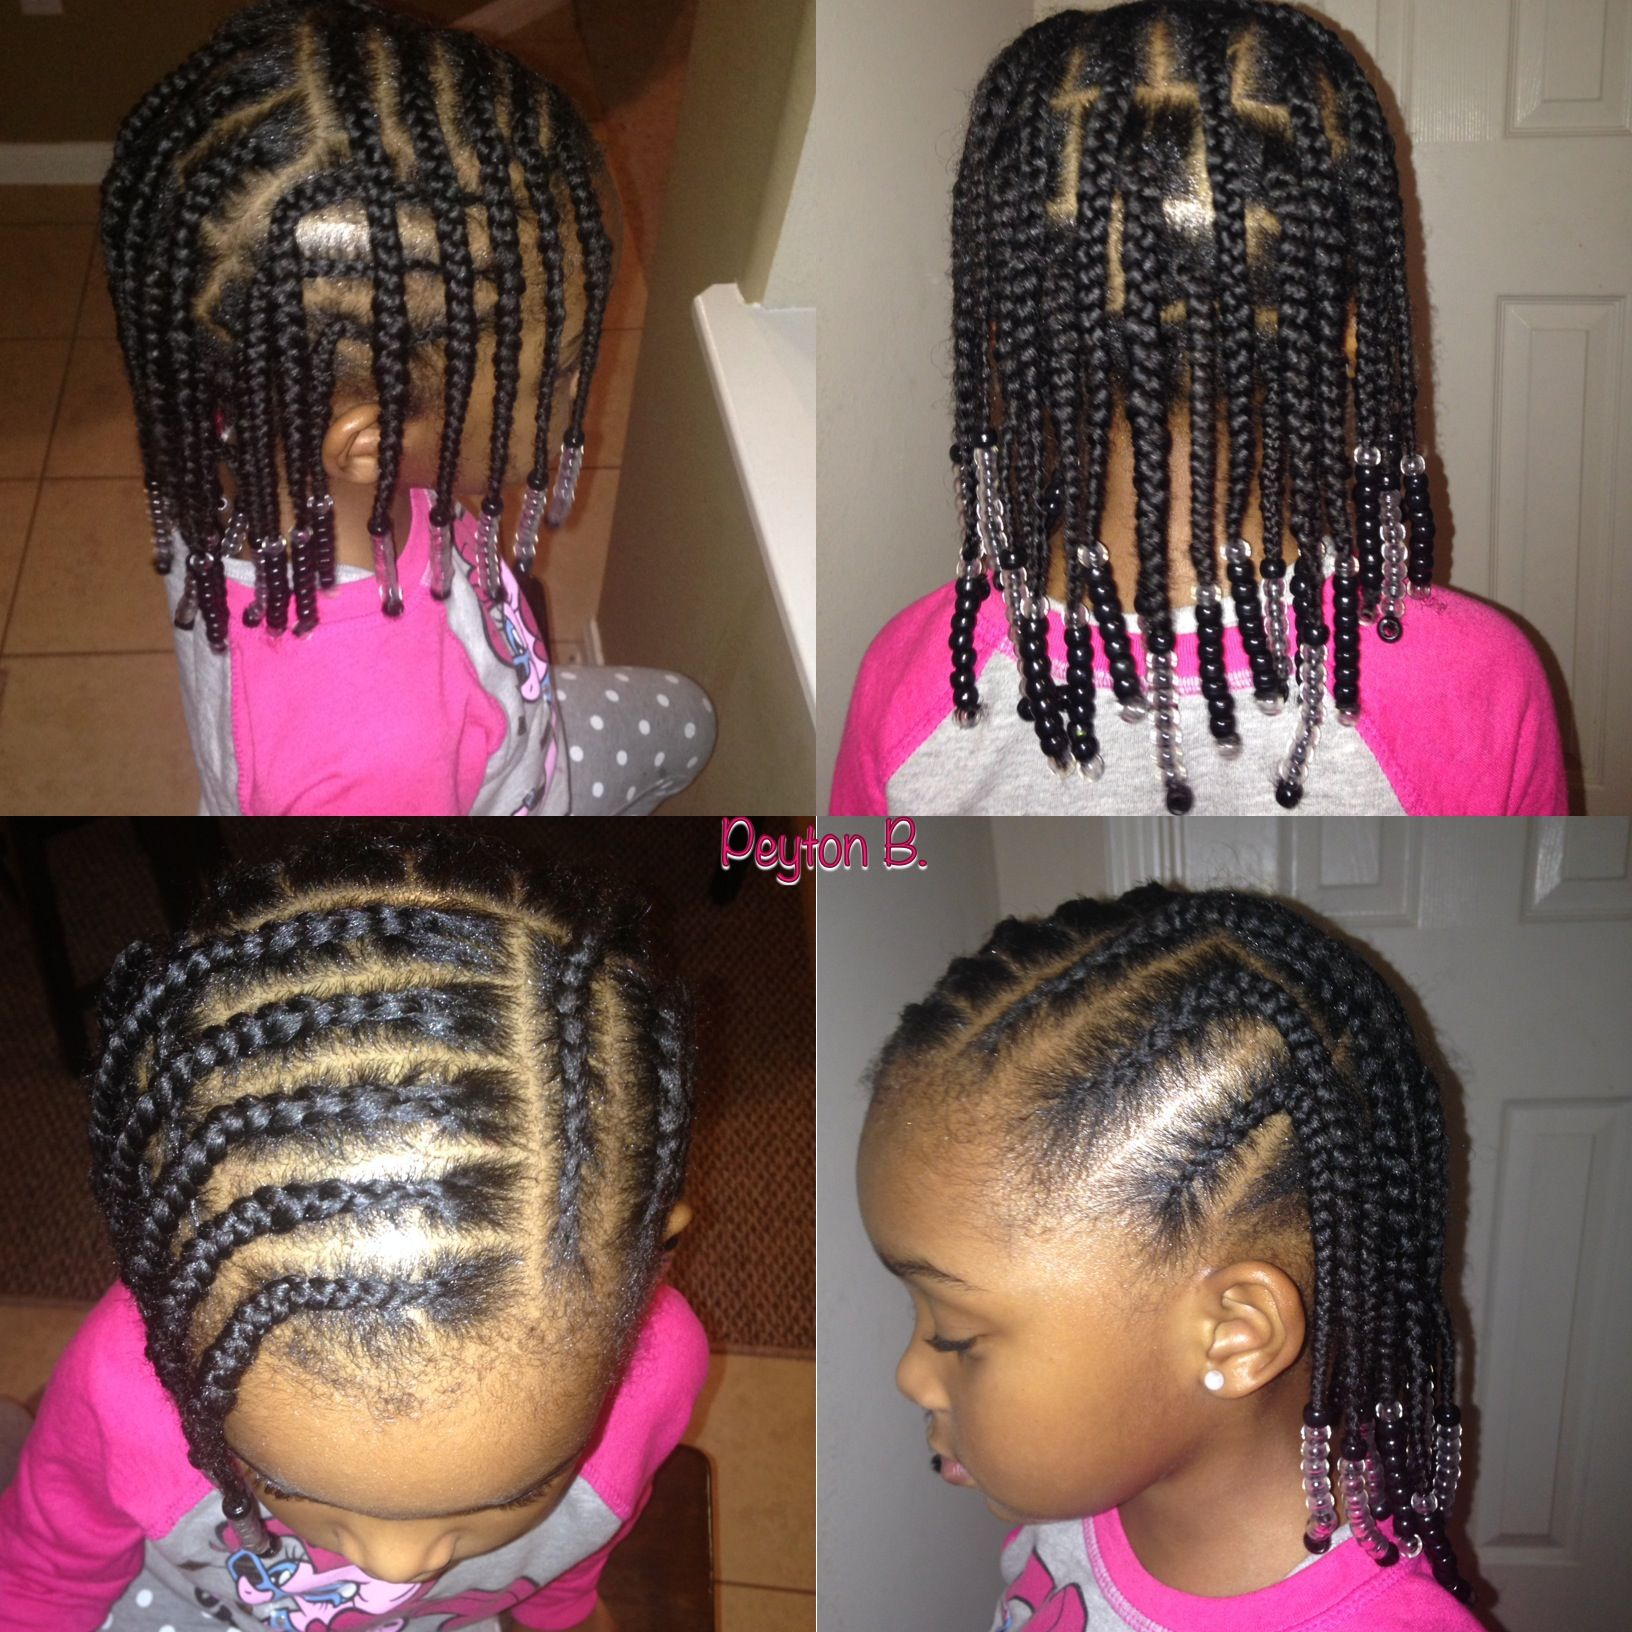 Simple Braided Hairstyles Gorgeous Box Braids Cornrows Beads Natural Hairstyles For Kids  Little